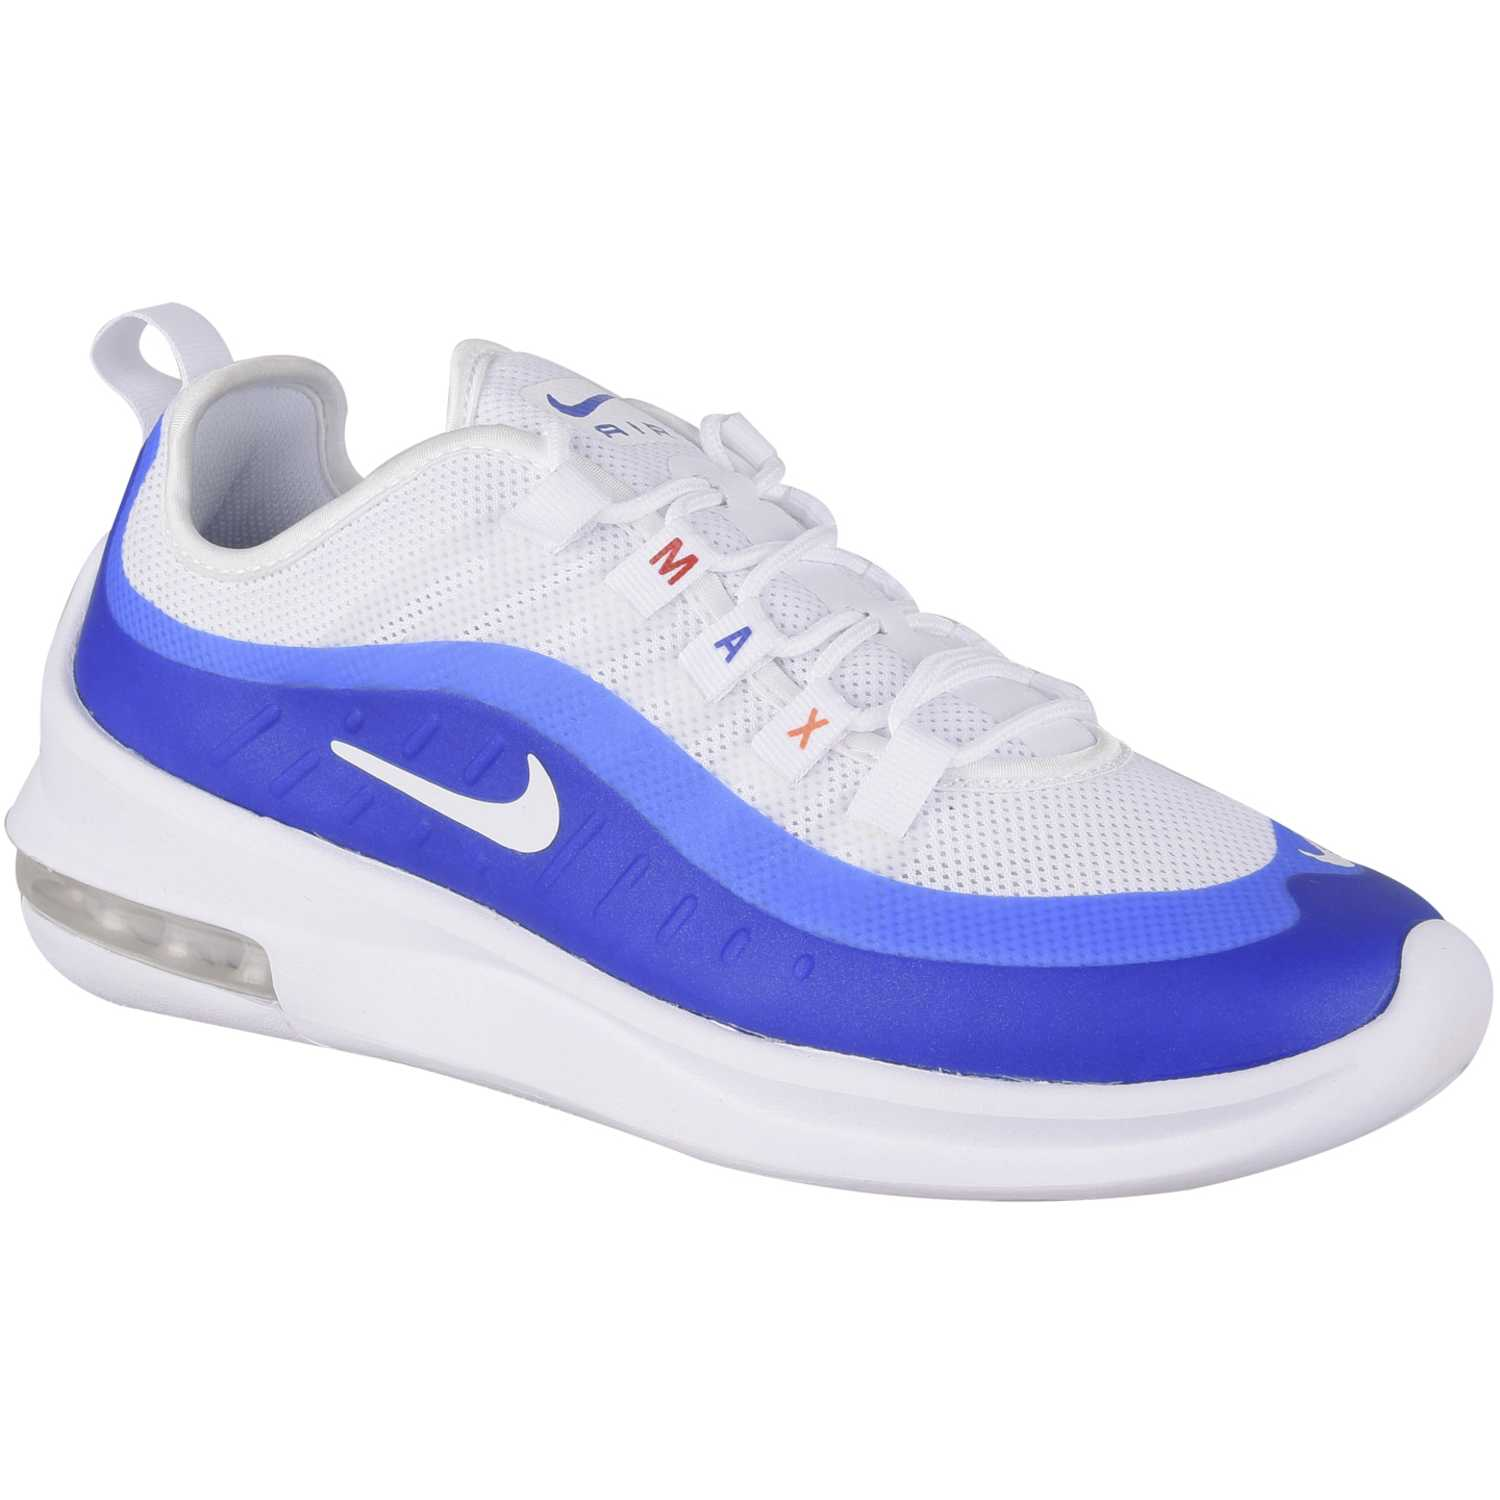 coger un resfriado tanque Abuso  Nike nike air max axis Azul / blanco Walking | platanitos.com